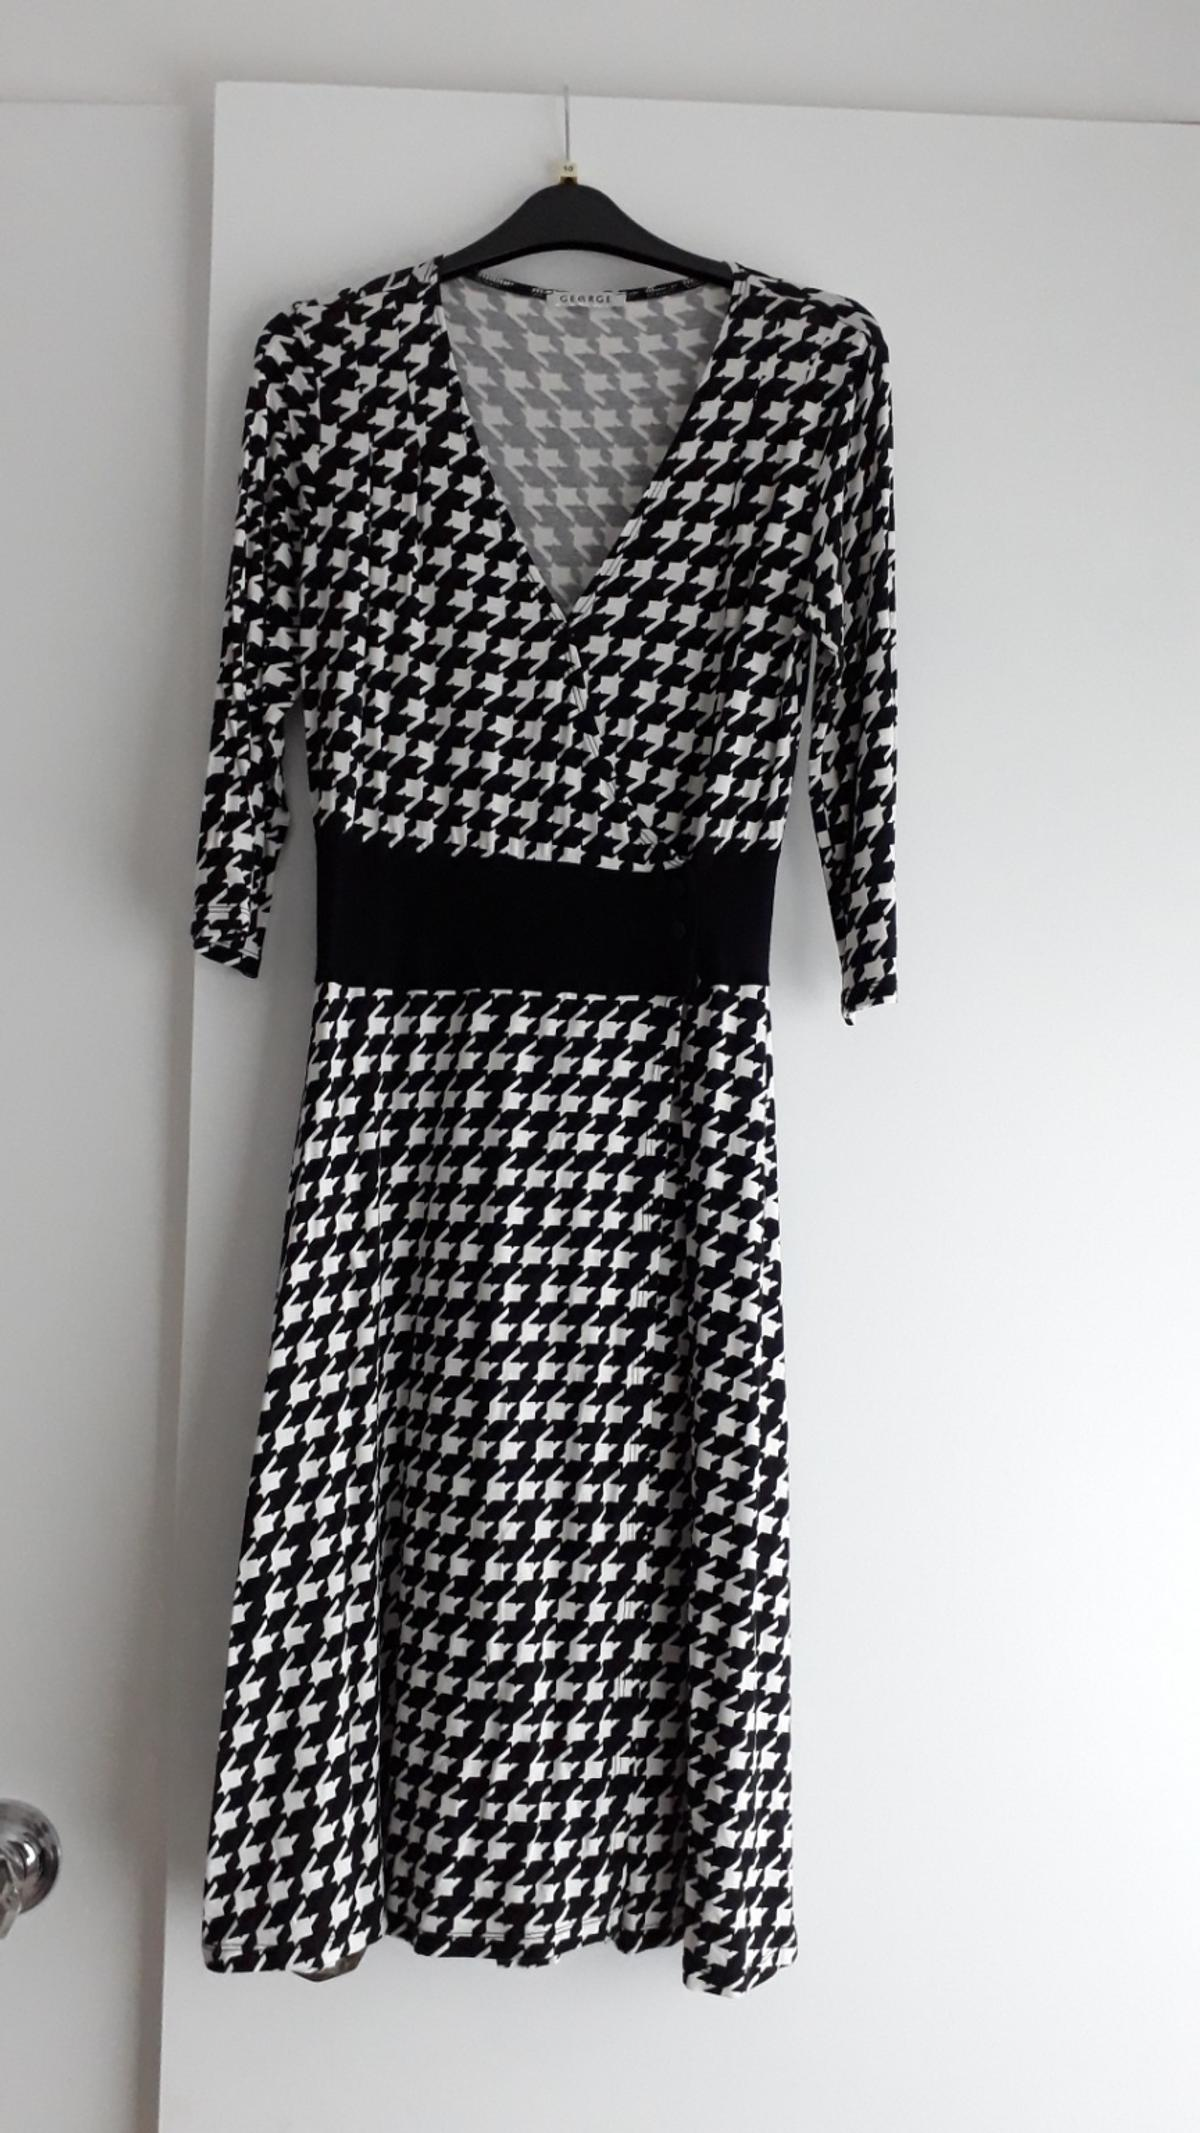 b9a8586637 womens dress UK 10 black and white dog tooth in LS18 Leeds for £5.00 ...